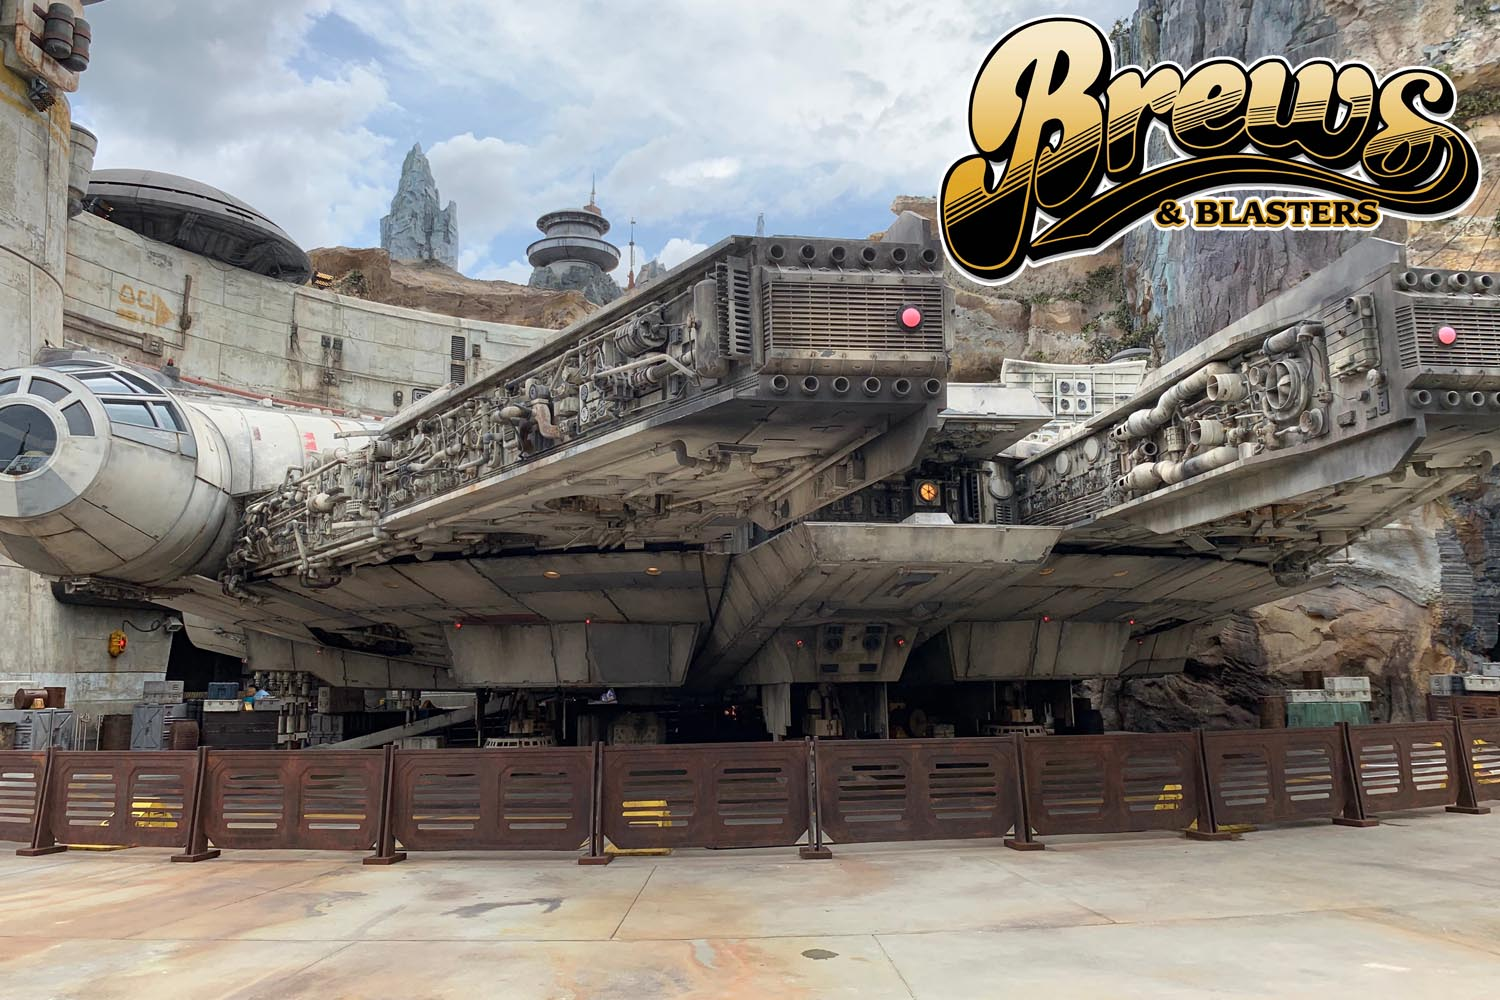 Brews and Blasters 221: Star Wars Galaxy's Edge at Walt Disney World